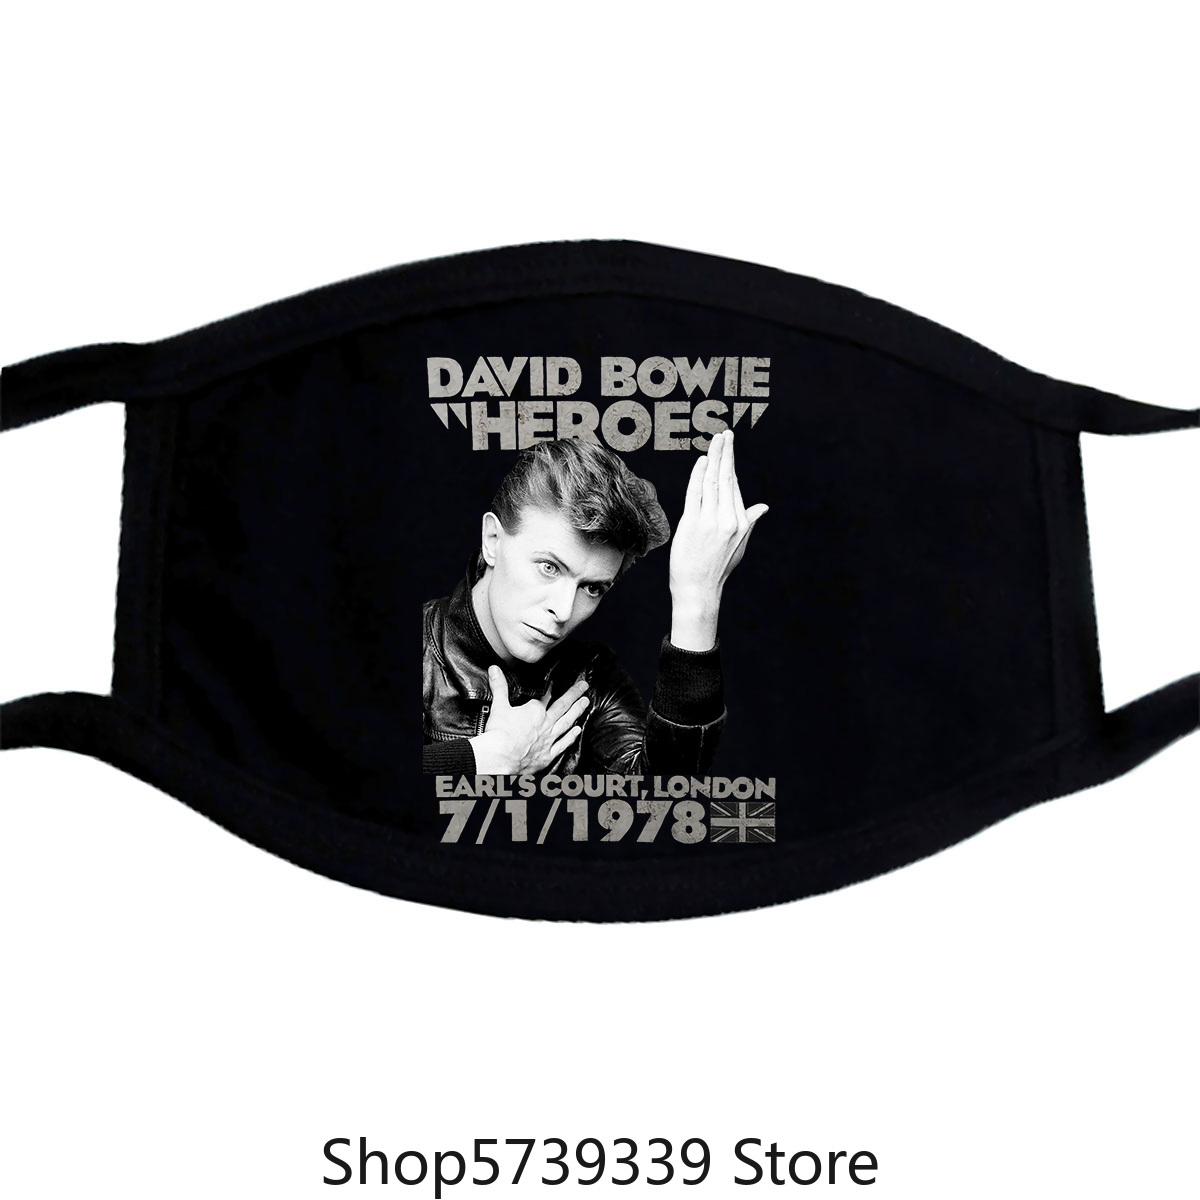 David Bowie Men'S Heroes Earls Court Slim Fit Mask Xx-Large Black Washable Reusable Mask With